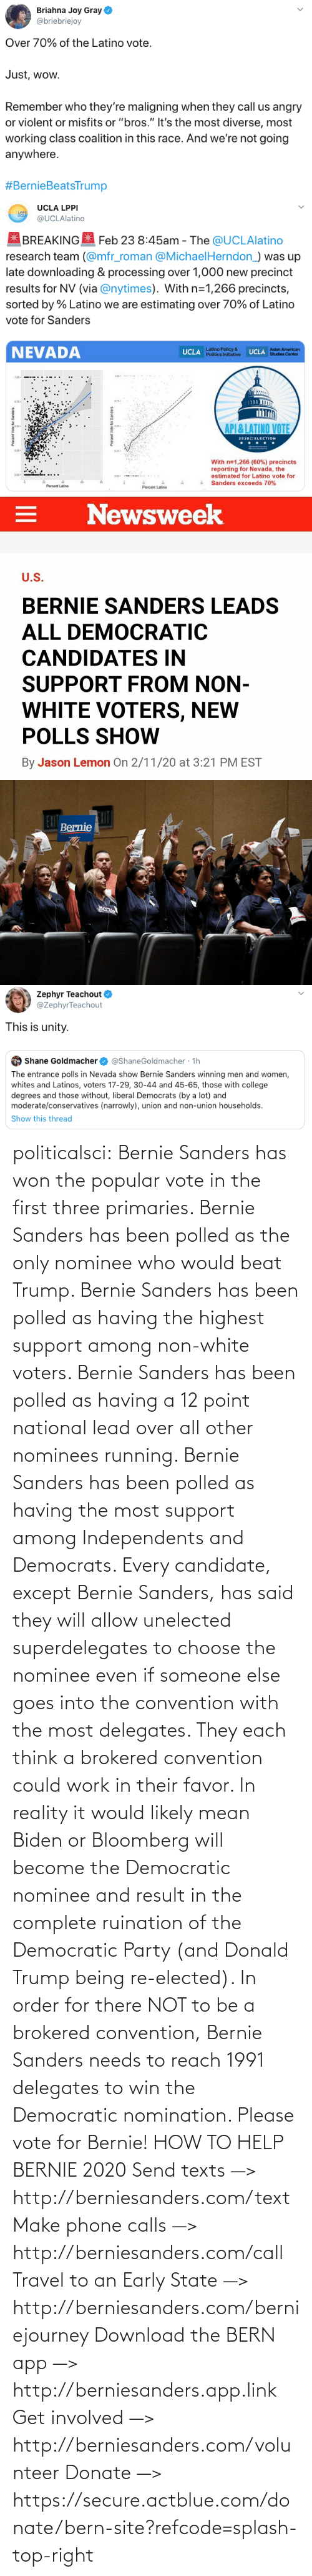 vote: politicalsci: Bernie Sanders has won the popular vote in the first three primaries. Bernie Sanders has  been polled as the only nominee who would beat Trump. Bernie Sanders  has been polled as having the highest support among non-white voters.  Bernie Sanders has been polled as having a 12 point national lead over  all other nominees running. Bernie Sanders has been polled as having the most support among Independents and Democrats.  Every candidate, except Bernie Sanders, has said they will allow  unelected superdelegates to choose the nominee even if someone else goes  into the convention with the most delegates. They each think a brokered  convention could work in their favor. In  reality it would likely mean Biden or Bloomberg will become the  Democratic nominee and result in the complete ruination of the  Democratic Party (and Donald Trump being re-elected). In order for there  NOT to be a brokered  convention, Bernie Sanders needs to reach 1991 delegates to win the  Democratic  nomination. Please vote for Bernie!  HOW TO HELP BERNIE 2020 Send texts —> http://berniesanders.com/text  Make phone calls —> http://berniesanders.com/call  Travel to an Early State —> http://berniesanders.com/berniejourney  Download the BERN app —> http://berniesanders.app.link  Get involved —> http://berniesanders.com/volunteer Donate —> https://secure.actblue.com/donate/bern-site?refcode=splash-top-right